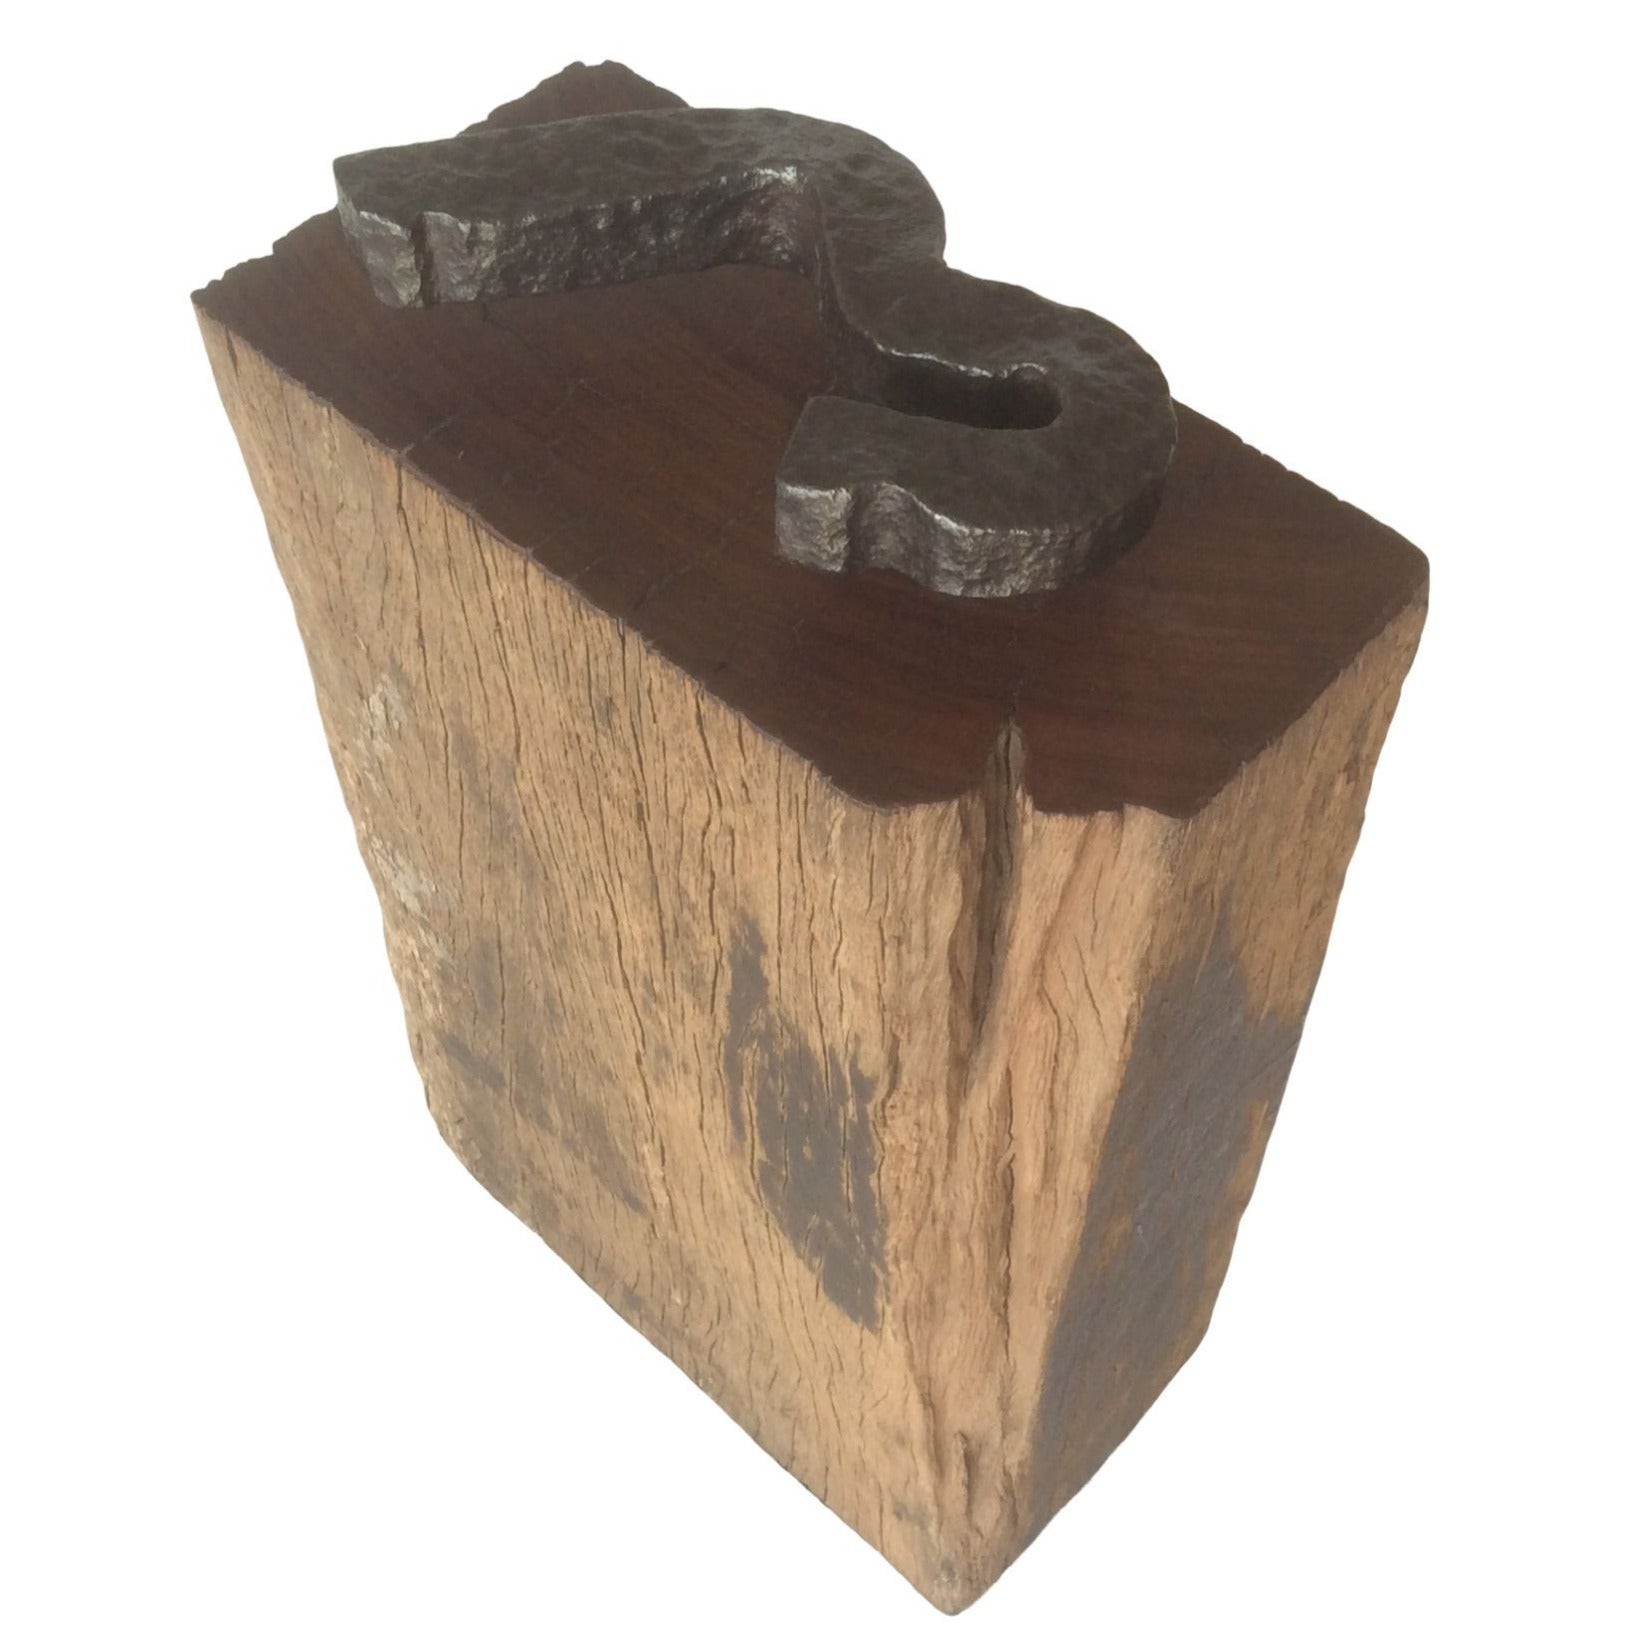 Recycled wharf timber with rail anchor and weathered edges, top view.